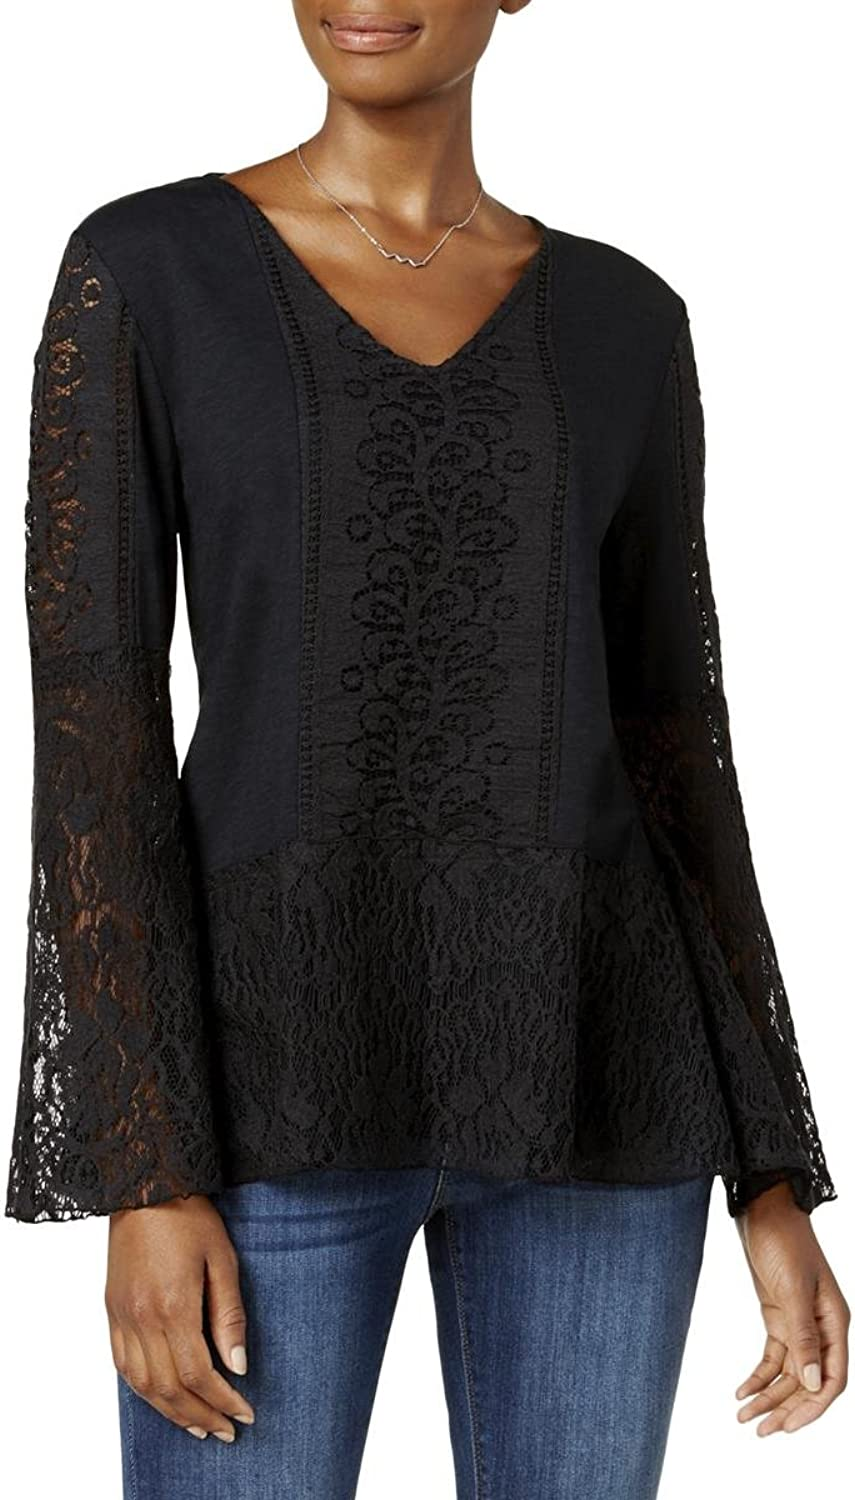 Style & Co. Lace BellSleeve Top